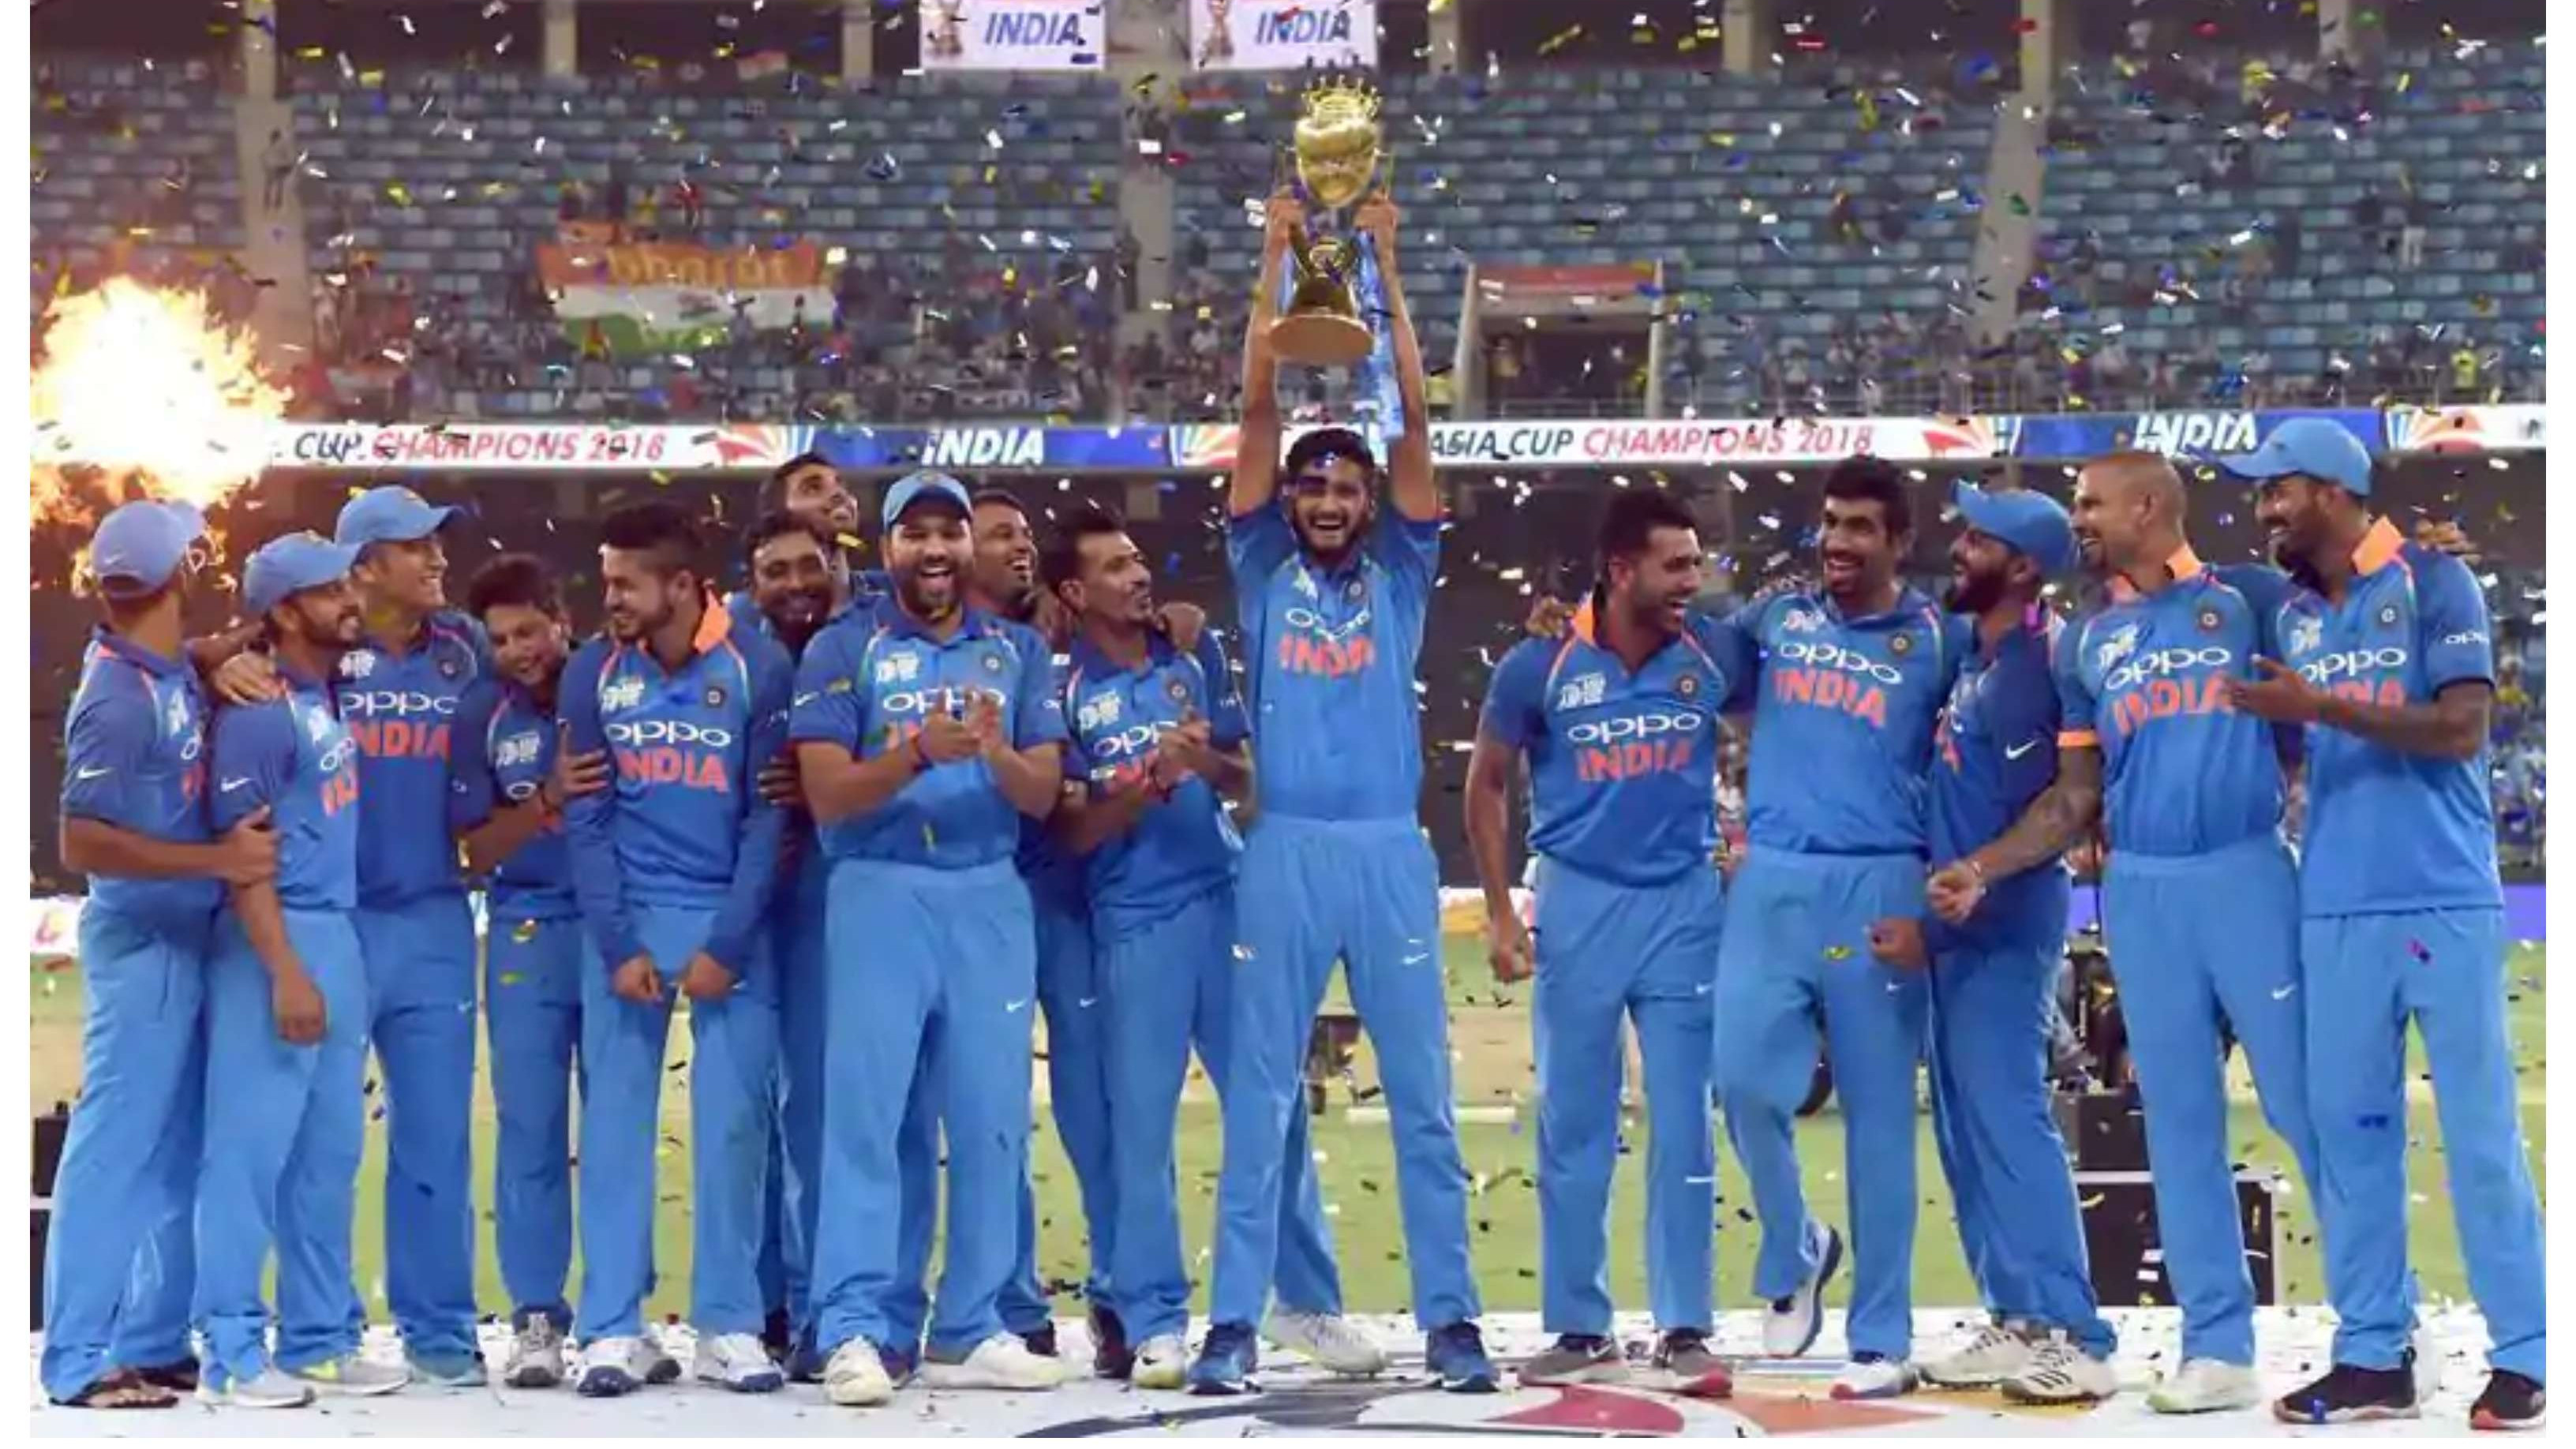 BCCI likely to send second-string squad for Asia Cup 2021 amid hectic schedule: Report